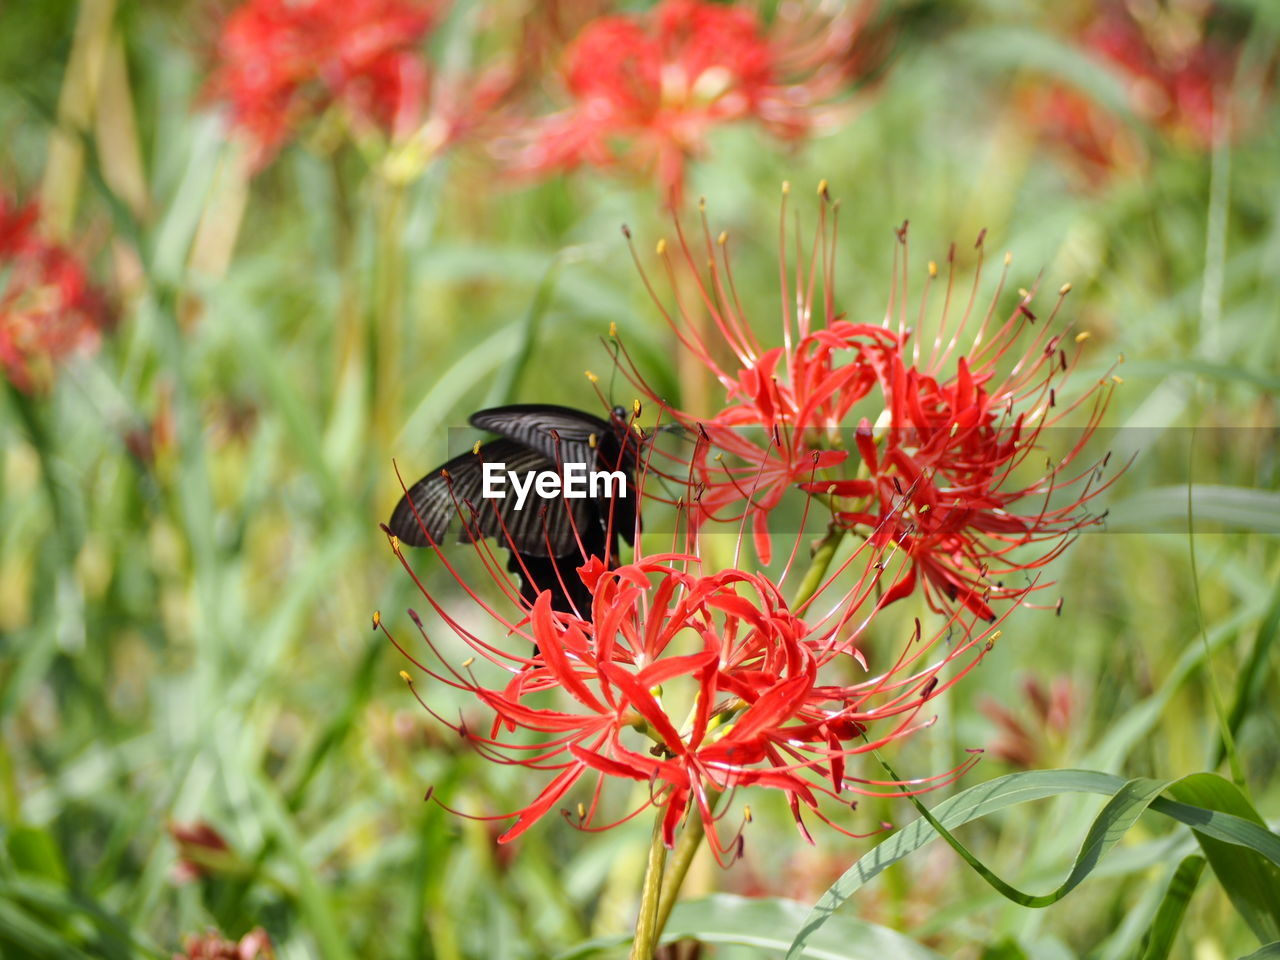 flower, flowering plant, invertebrate, plant, insect, beauty in nature, fragility, growth, vulnerability, one animal, animal wildlife, animals in the wild, animal themes, petal, freshness, animal, flower head, close-up, inflorescence, pollination, no people, pollen, animal wing, butterfly - insect